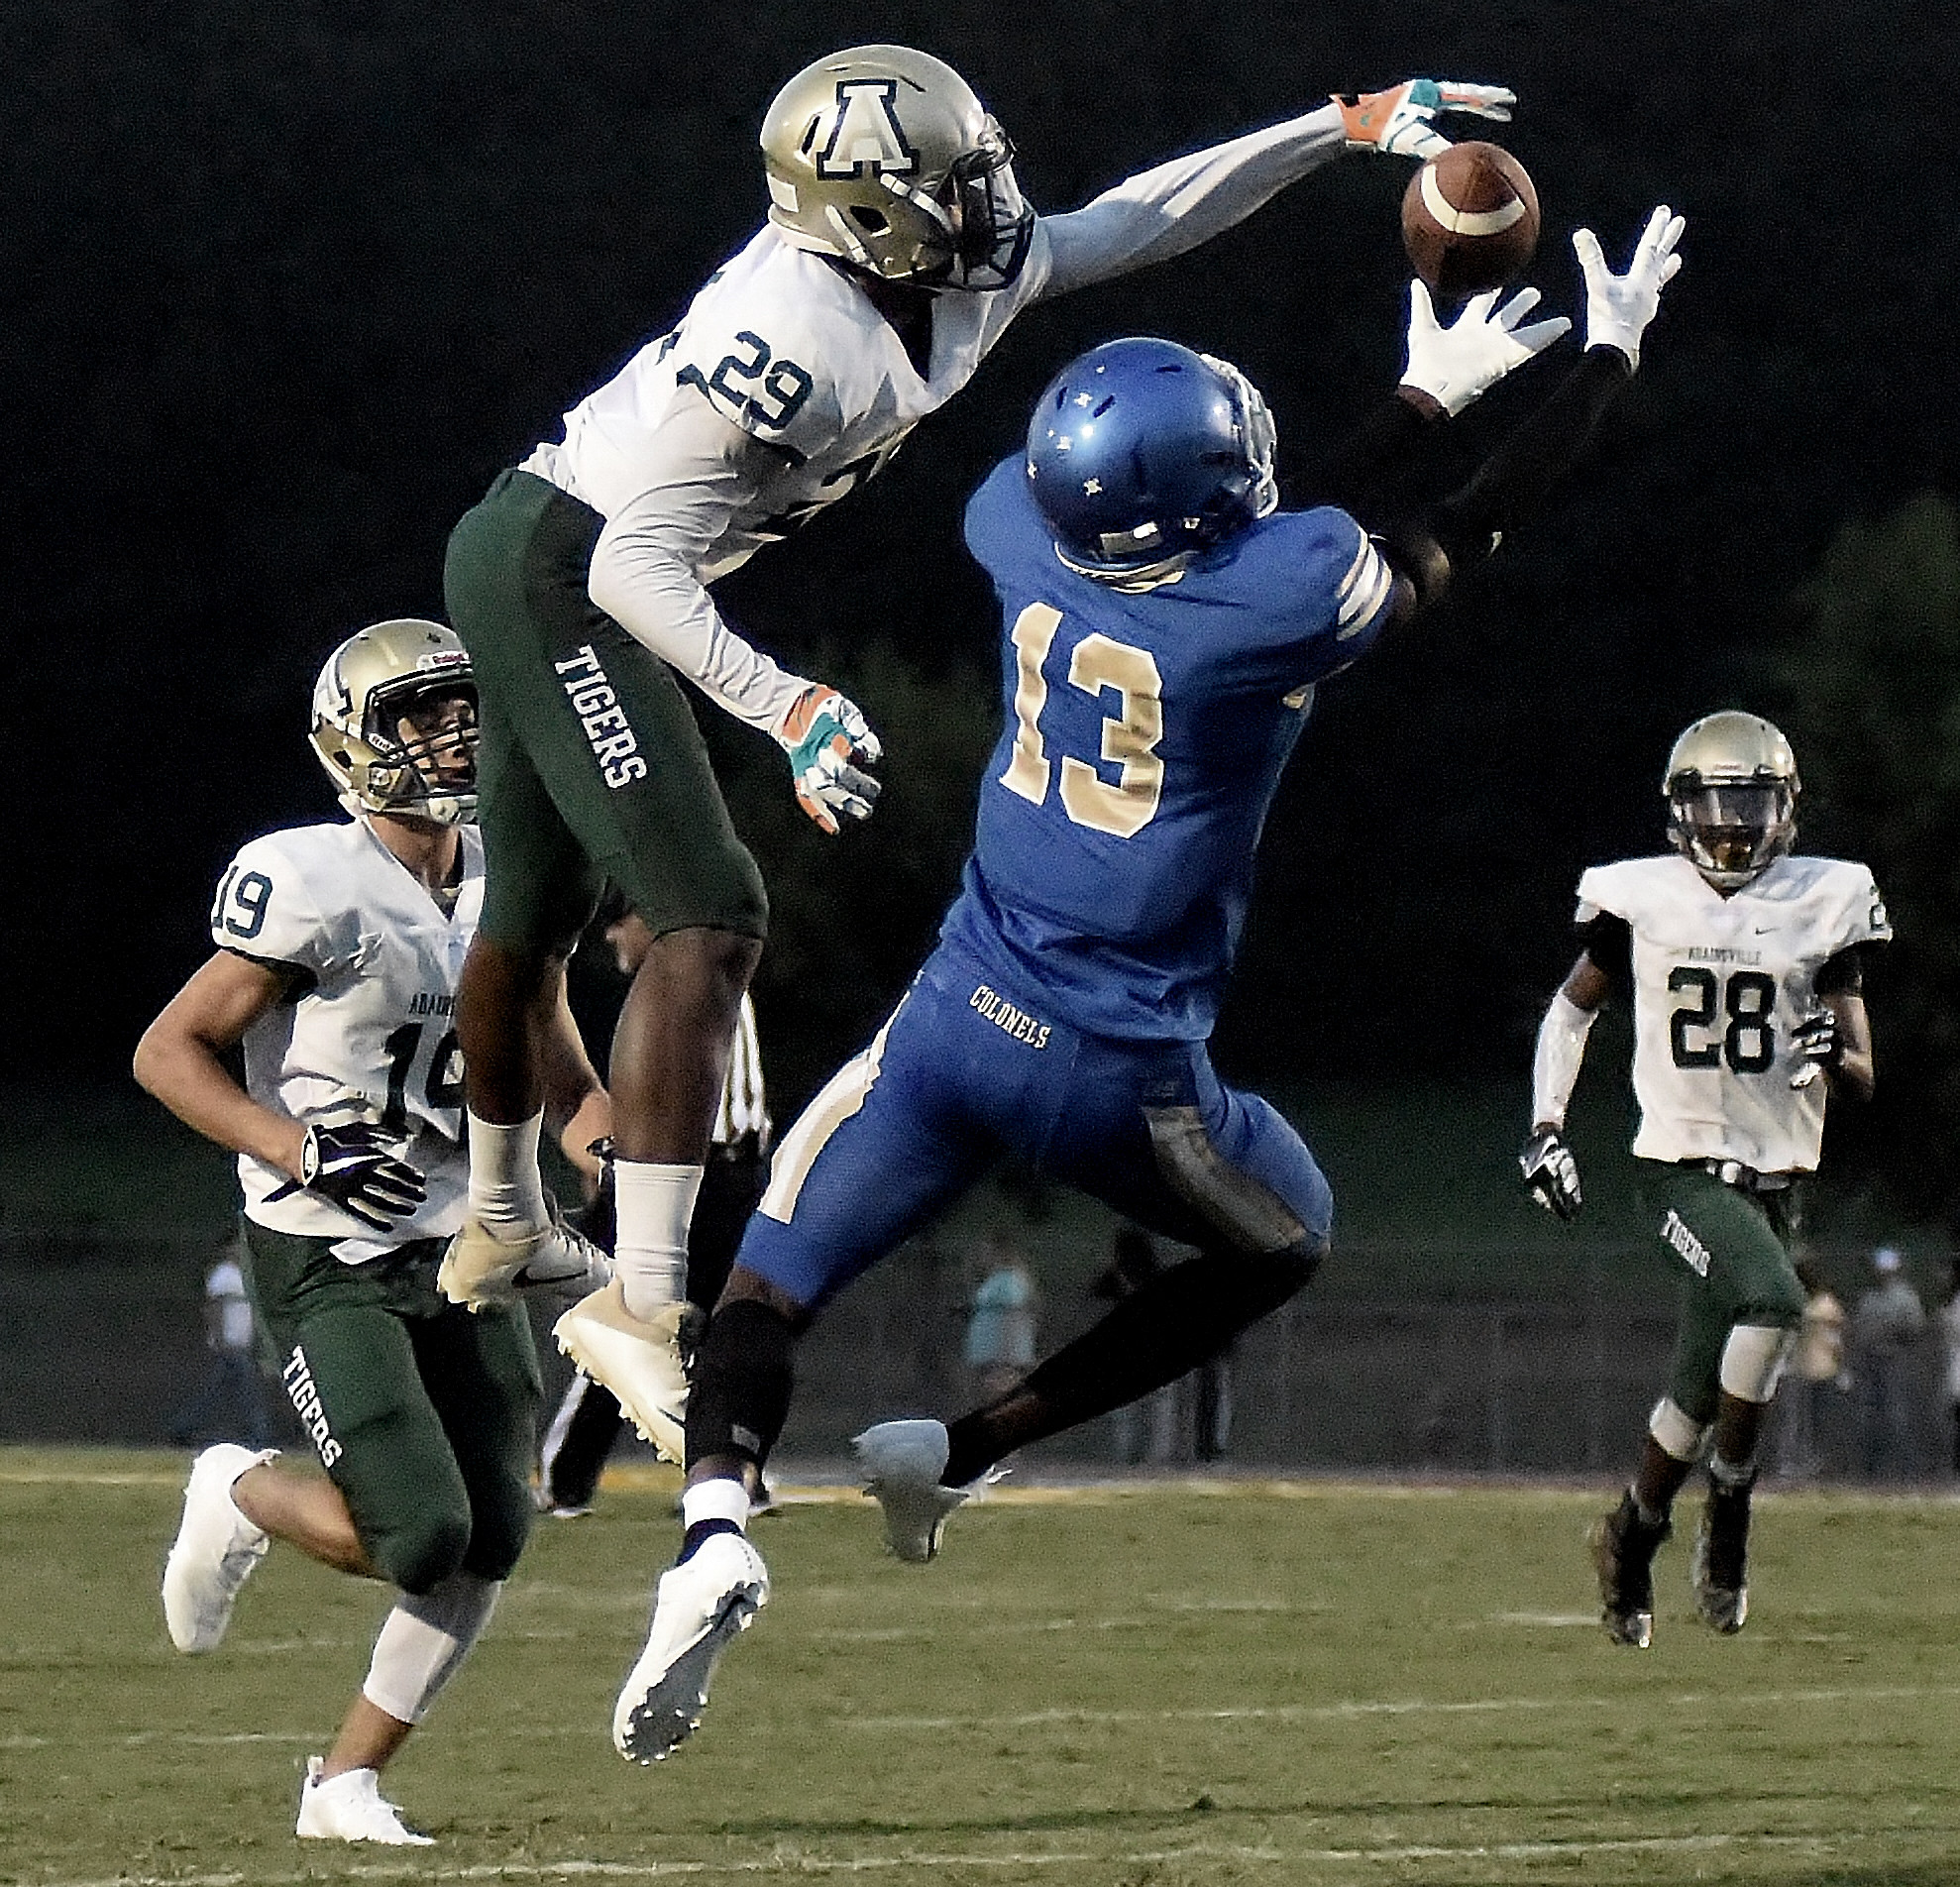 Adairsville's Danarous Johnson breaks up a pass intended for Cass' Jacquez Fountain during Friday's game. Fountain hauled in seven catches for 121 yards in the win.